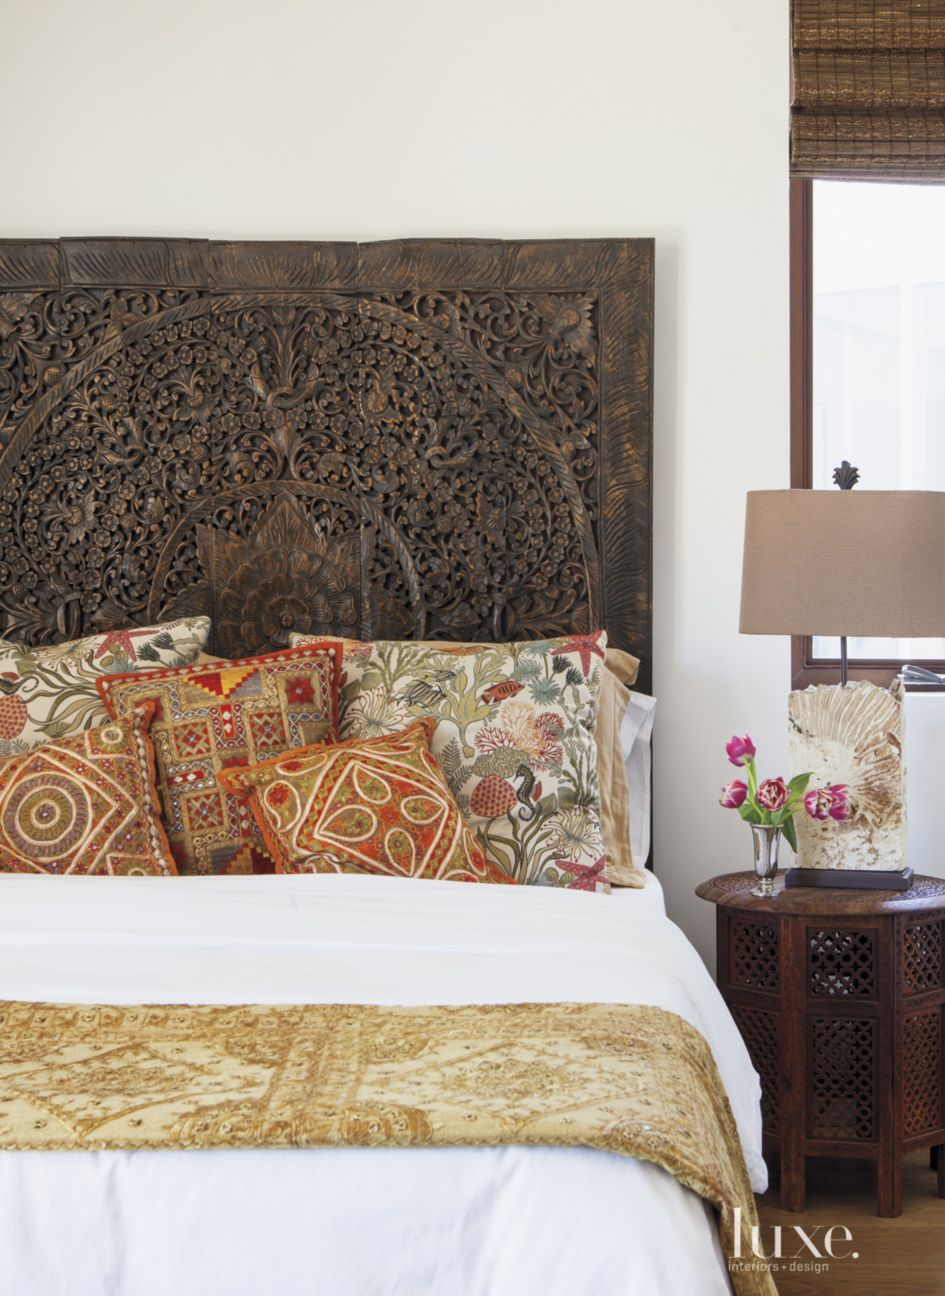 Contemporary White Bedroom with Carved Teak Headboard - Luxe ...